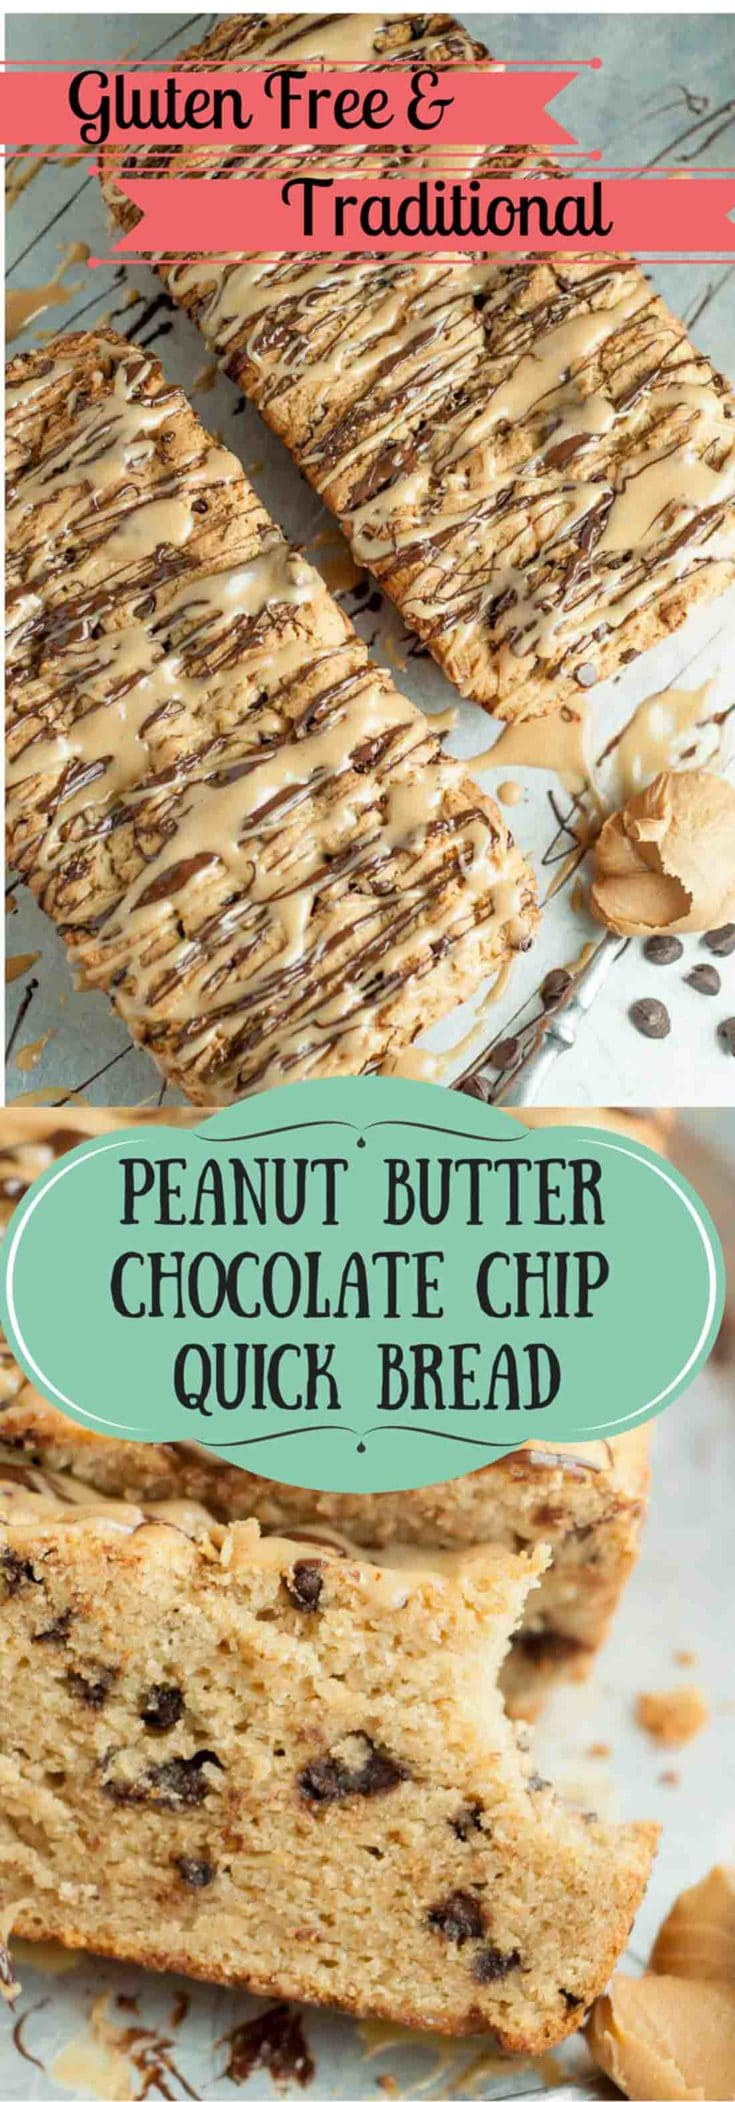 Peanut Butter Chocolate Chip Quick bread is a recipe everyone will be begging you for! This moist bread is drizzled with peanut butter and chocolate glazes. https://www.mamagourmand.com